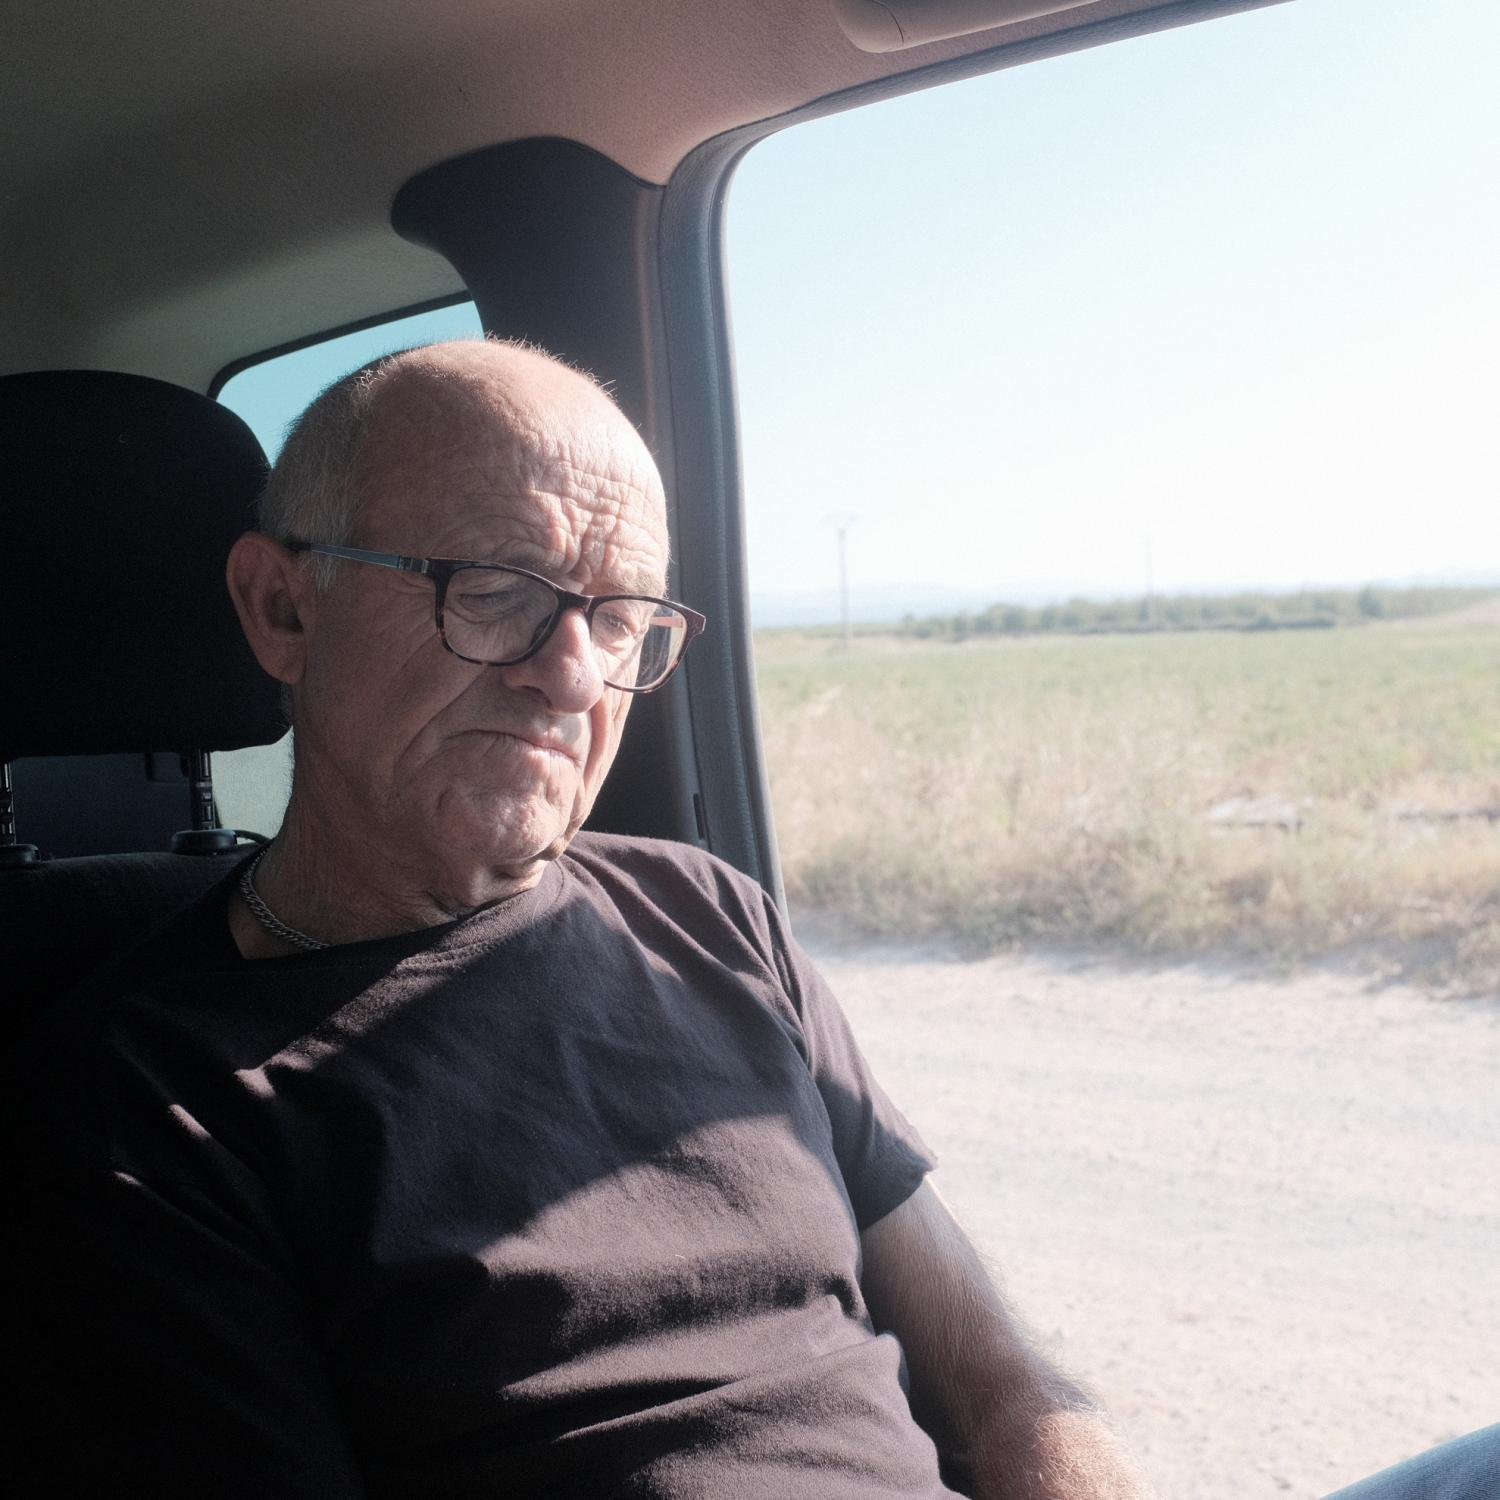 Donato Perez (63) thinking inside a car on the way to Bardenas was a Tiermas inhabitant (a town near the Pyrenees in Huesca that was forced to abandon due to construction of Yesa lake) when the government of Franco send him and his family to El Bayo a settler town in the north part of Zaragoza near the Monegros desert of Spain. After the Spanish civil war in 1936, under Francisco Franco�s dictatorship, an agriculture reform was enforced leading to the building of more than 300 new towns all around Spain. This towns were populated with people coming from other rural impoverished areas but most of them are in high risk of disappearing because the new generations are moving to cities and abandoning these areas Copyright: Spanish photojournalist Andoni Lubaki..